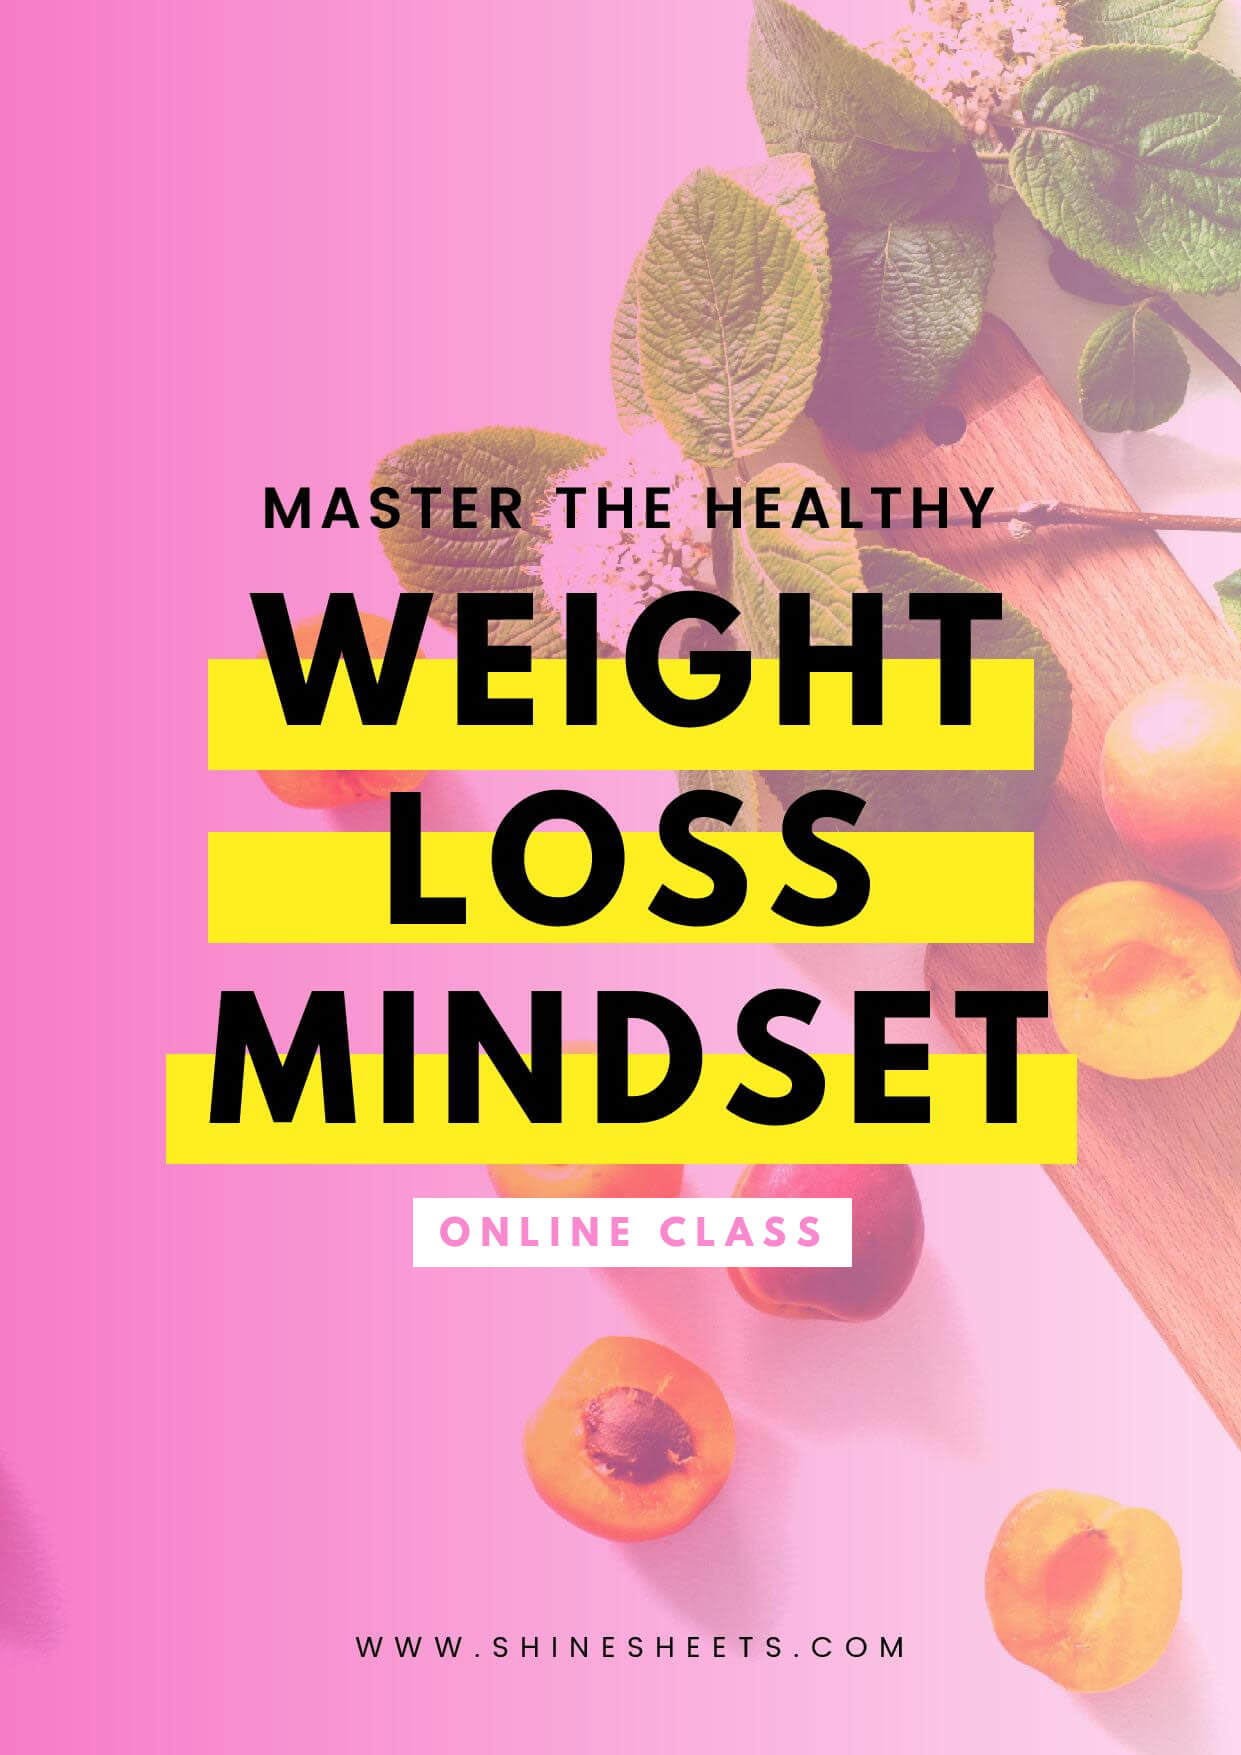 master the healthy weight loss mindset online class e book 42 pages shinesheets. Black Bedroom Furniture Sets. Home Design Ideas